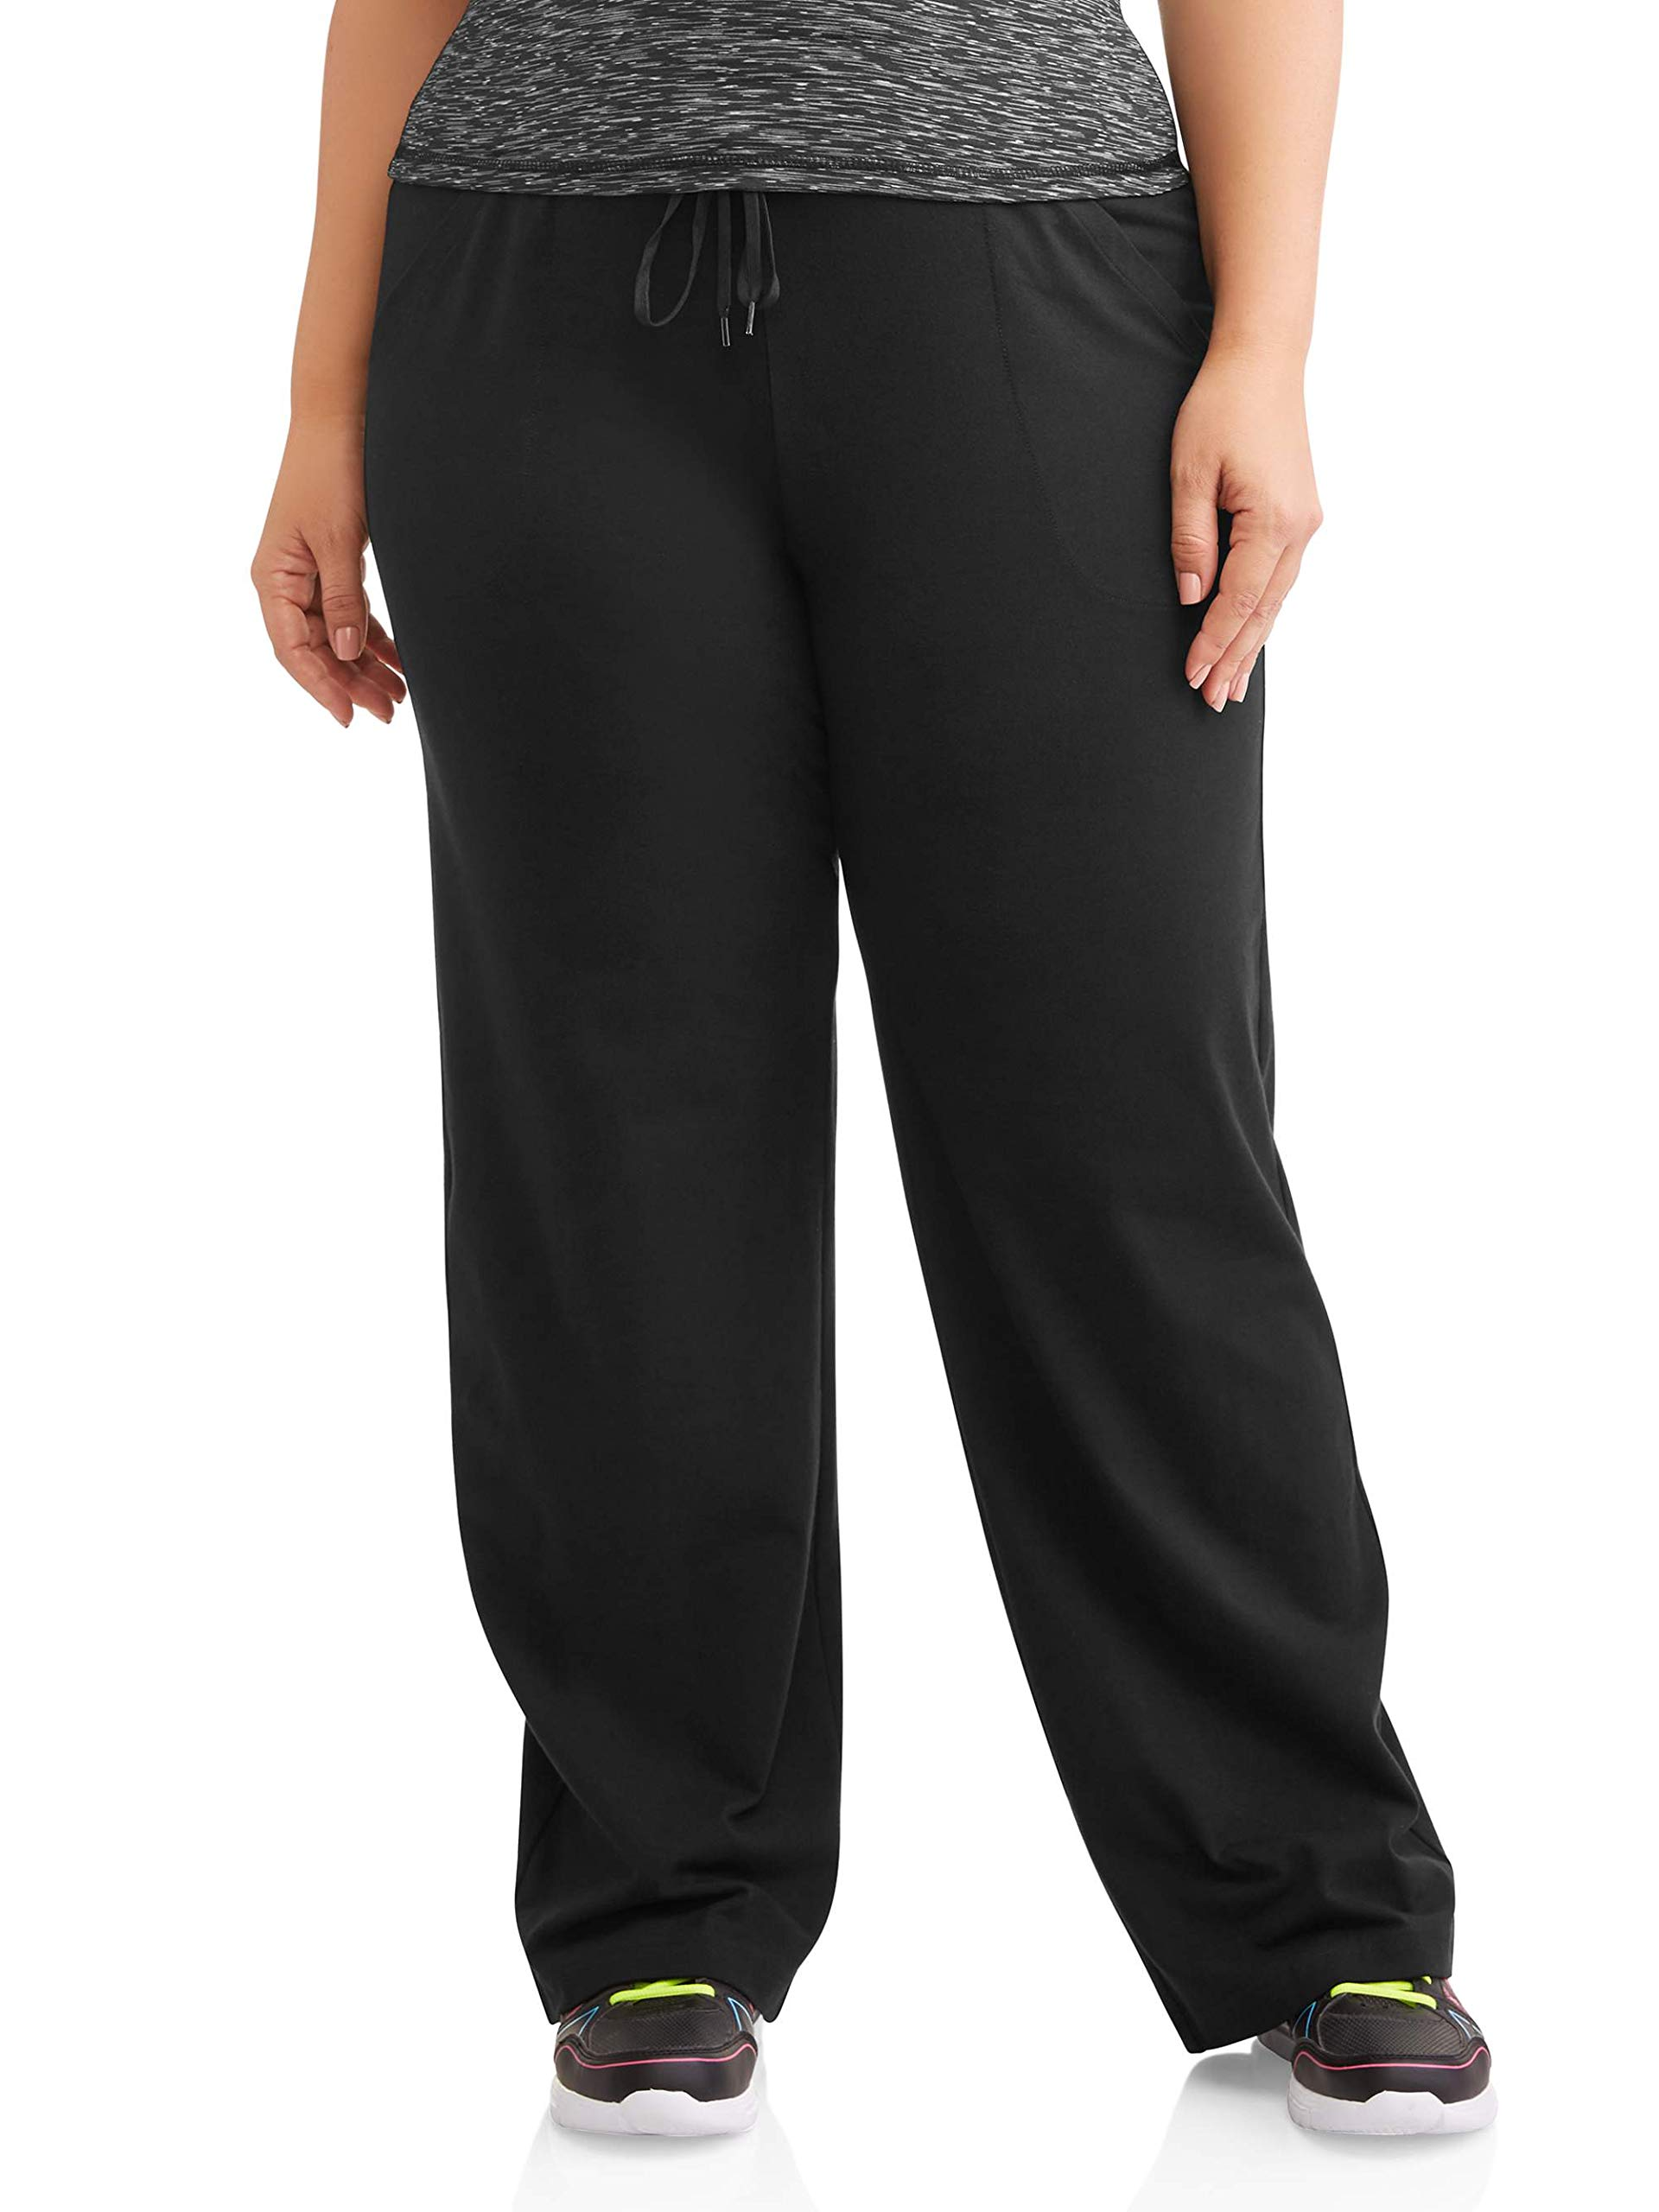 Plus Size Clothing - Women's Plus-Size Dri-More Core Relaxed Fit Workout Pant